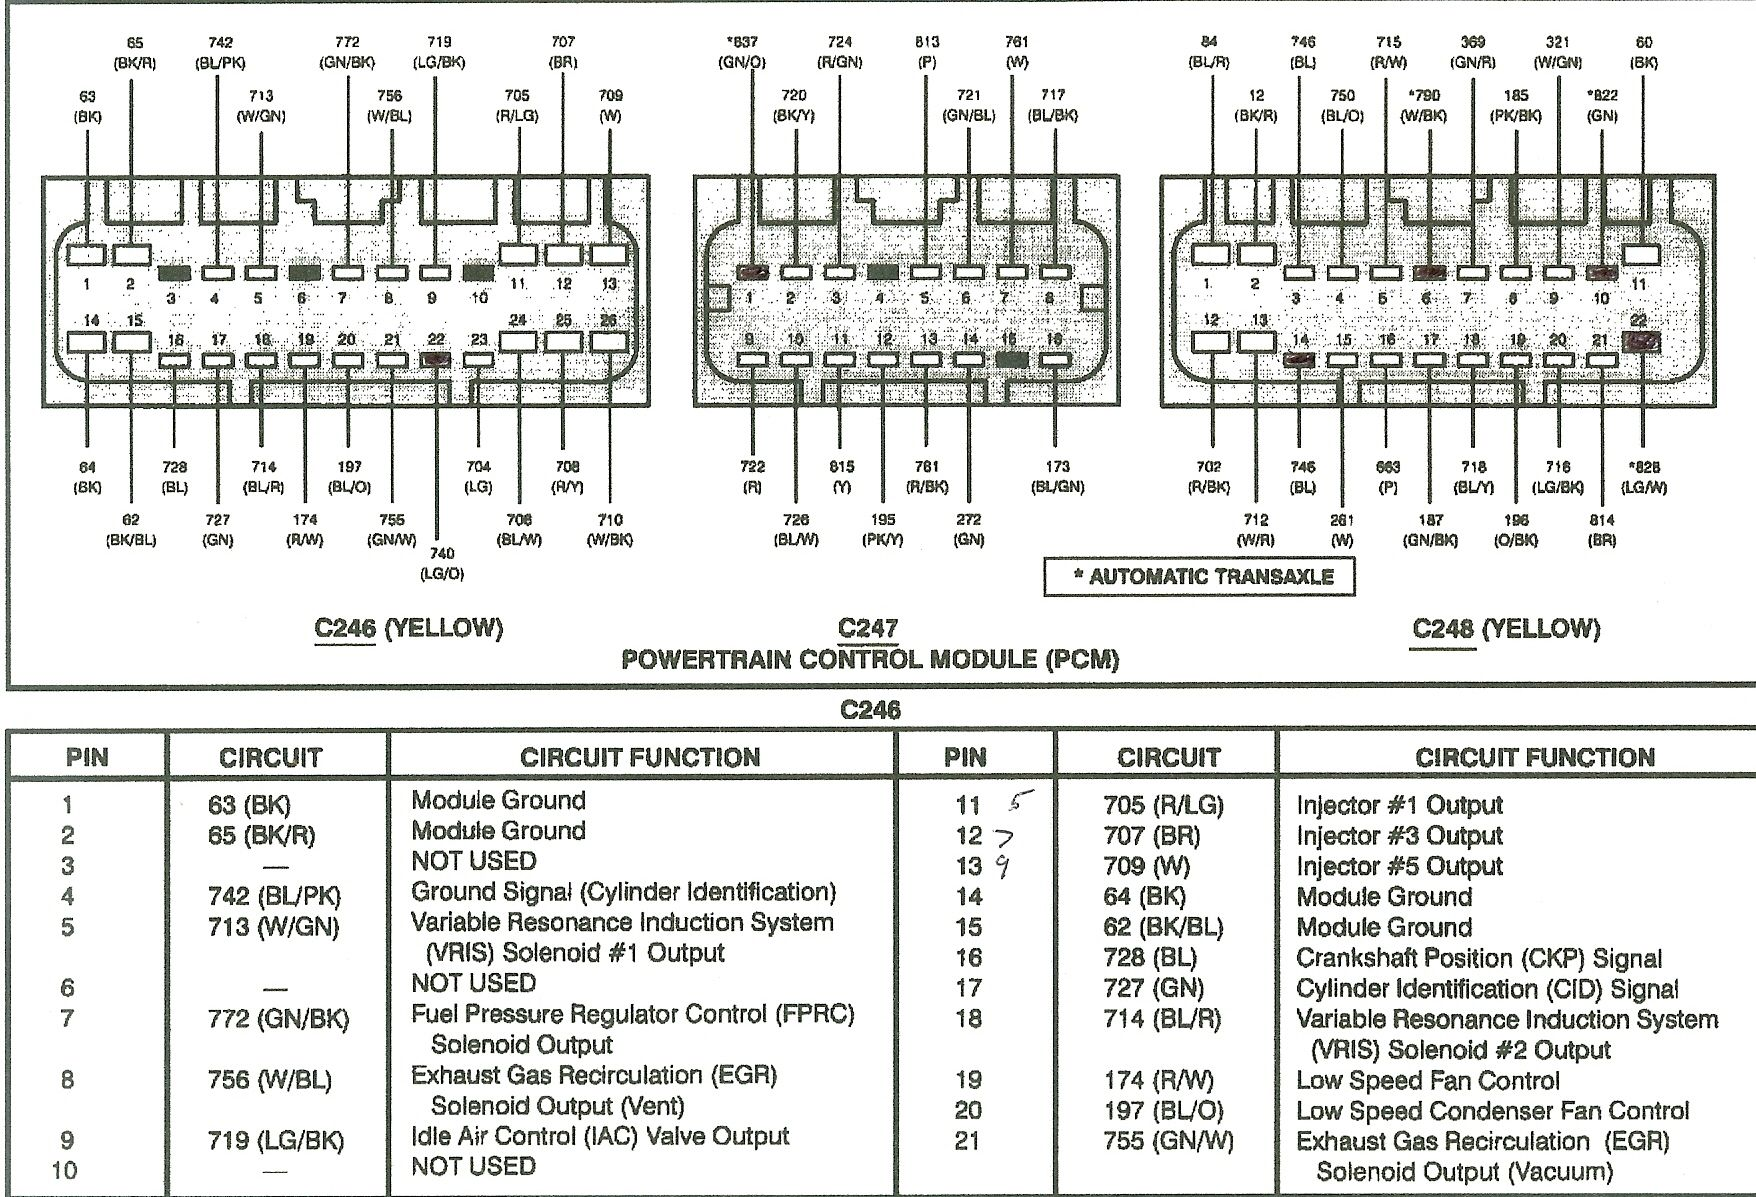 pinouts wiring diagram pcm to ecm 4.7 2002 dodge ram - intoAutos.com -  Image Results | Dodge ram, Dodge, Dodge durango | 2002 Dodge Truck Alternator Wiring |  | Pinterest